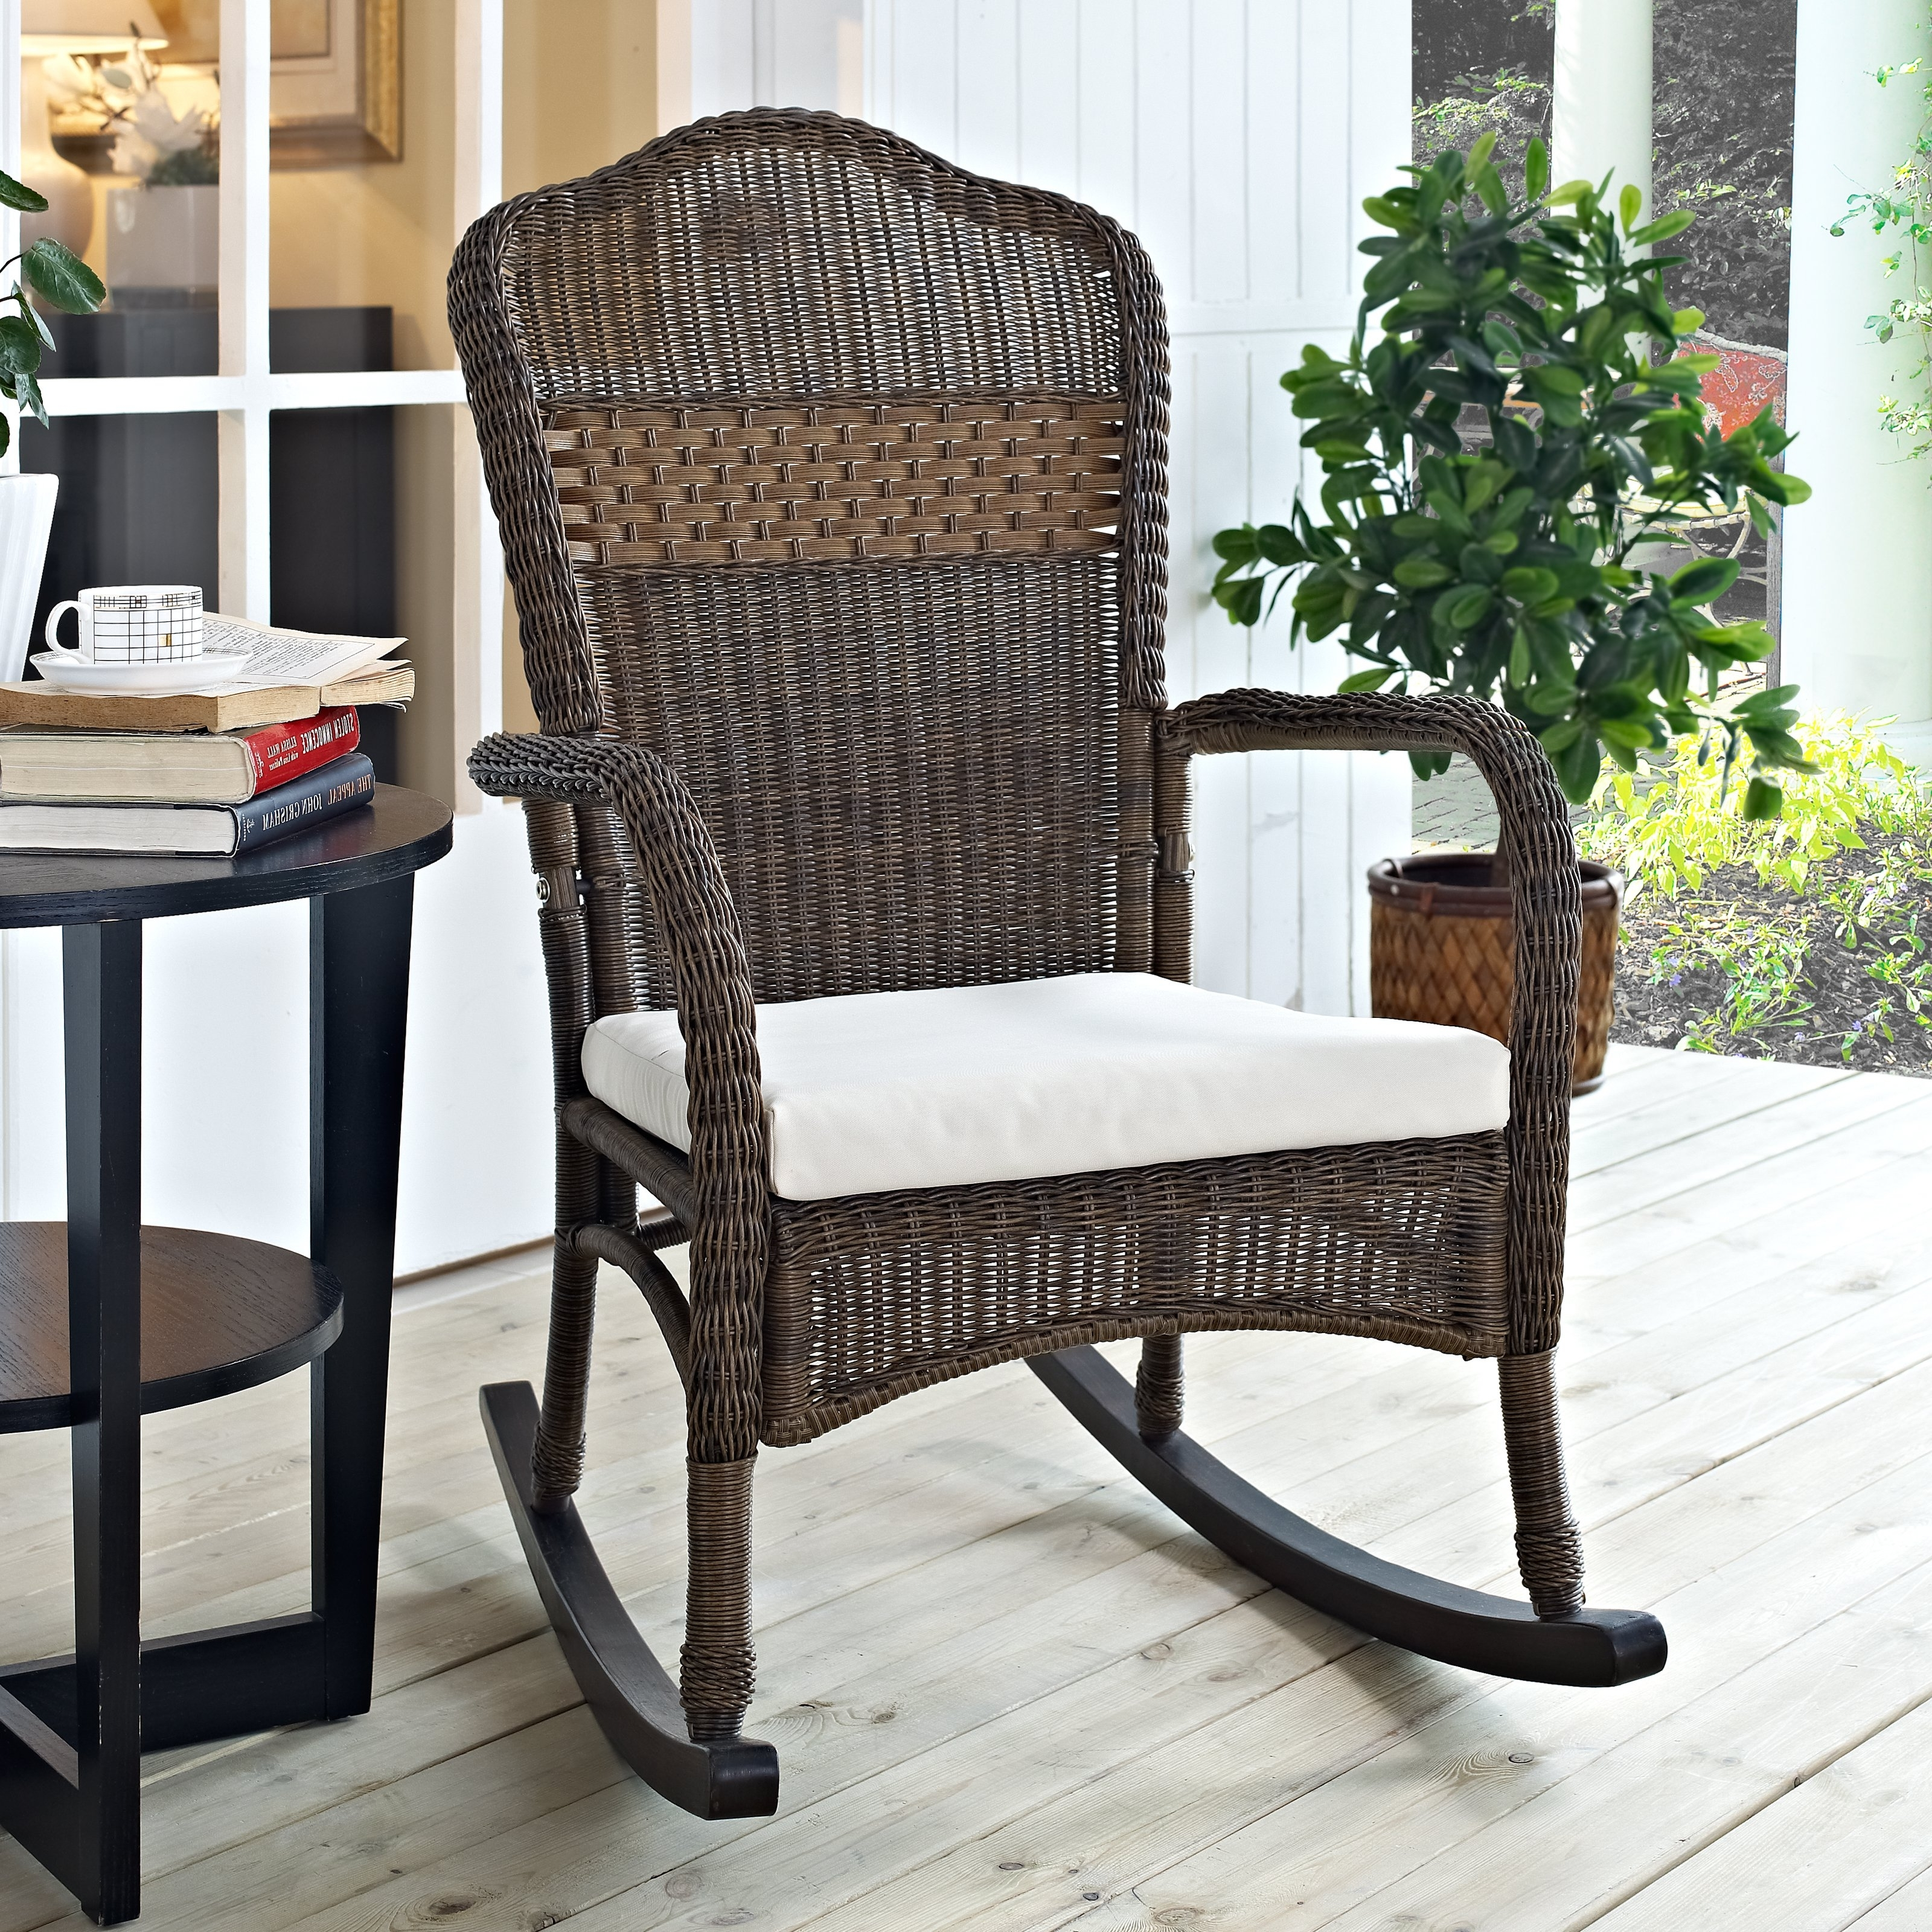 Preferred Coral Coast Mocha Resin Wicker Rocking Chair With Beige Cushion Inside Patio Rocking Chairs With Ottoman (View 2 of 20)